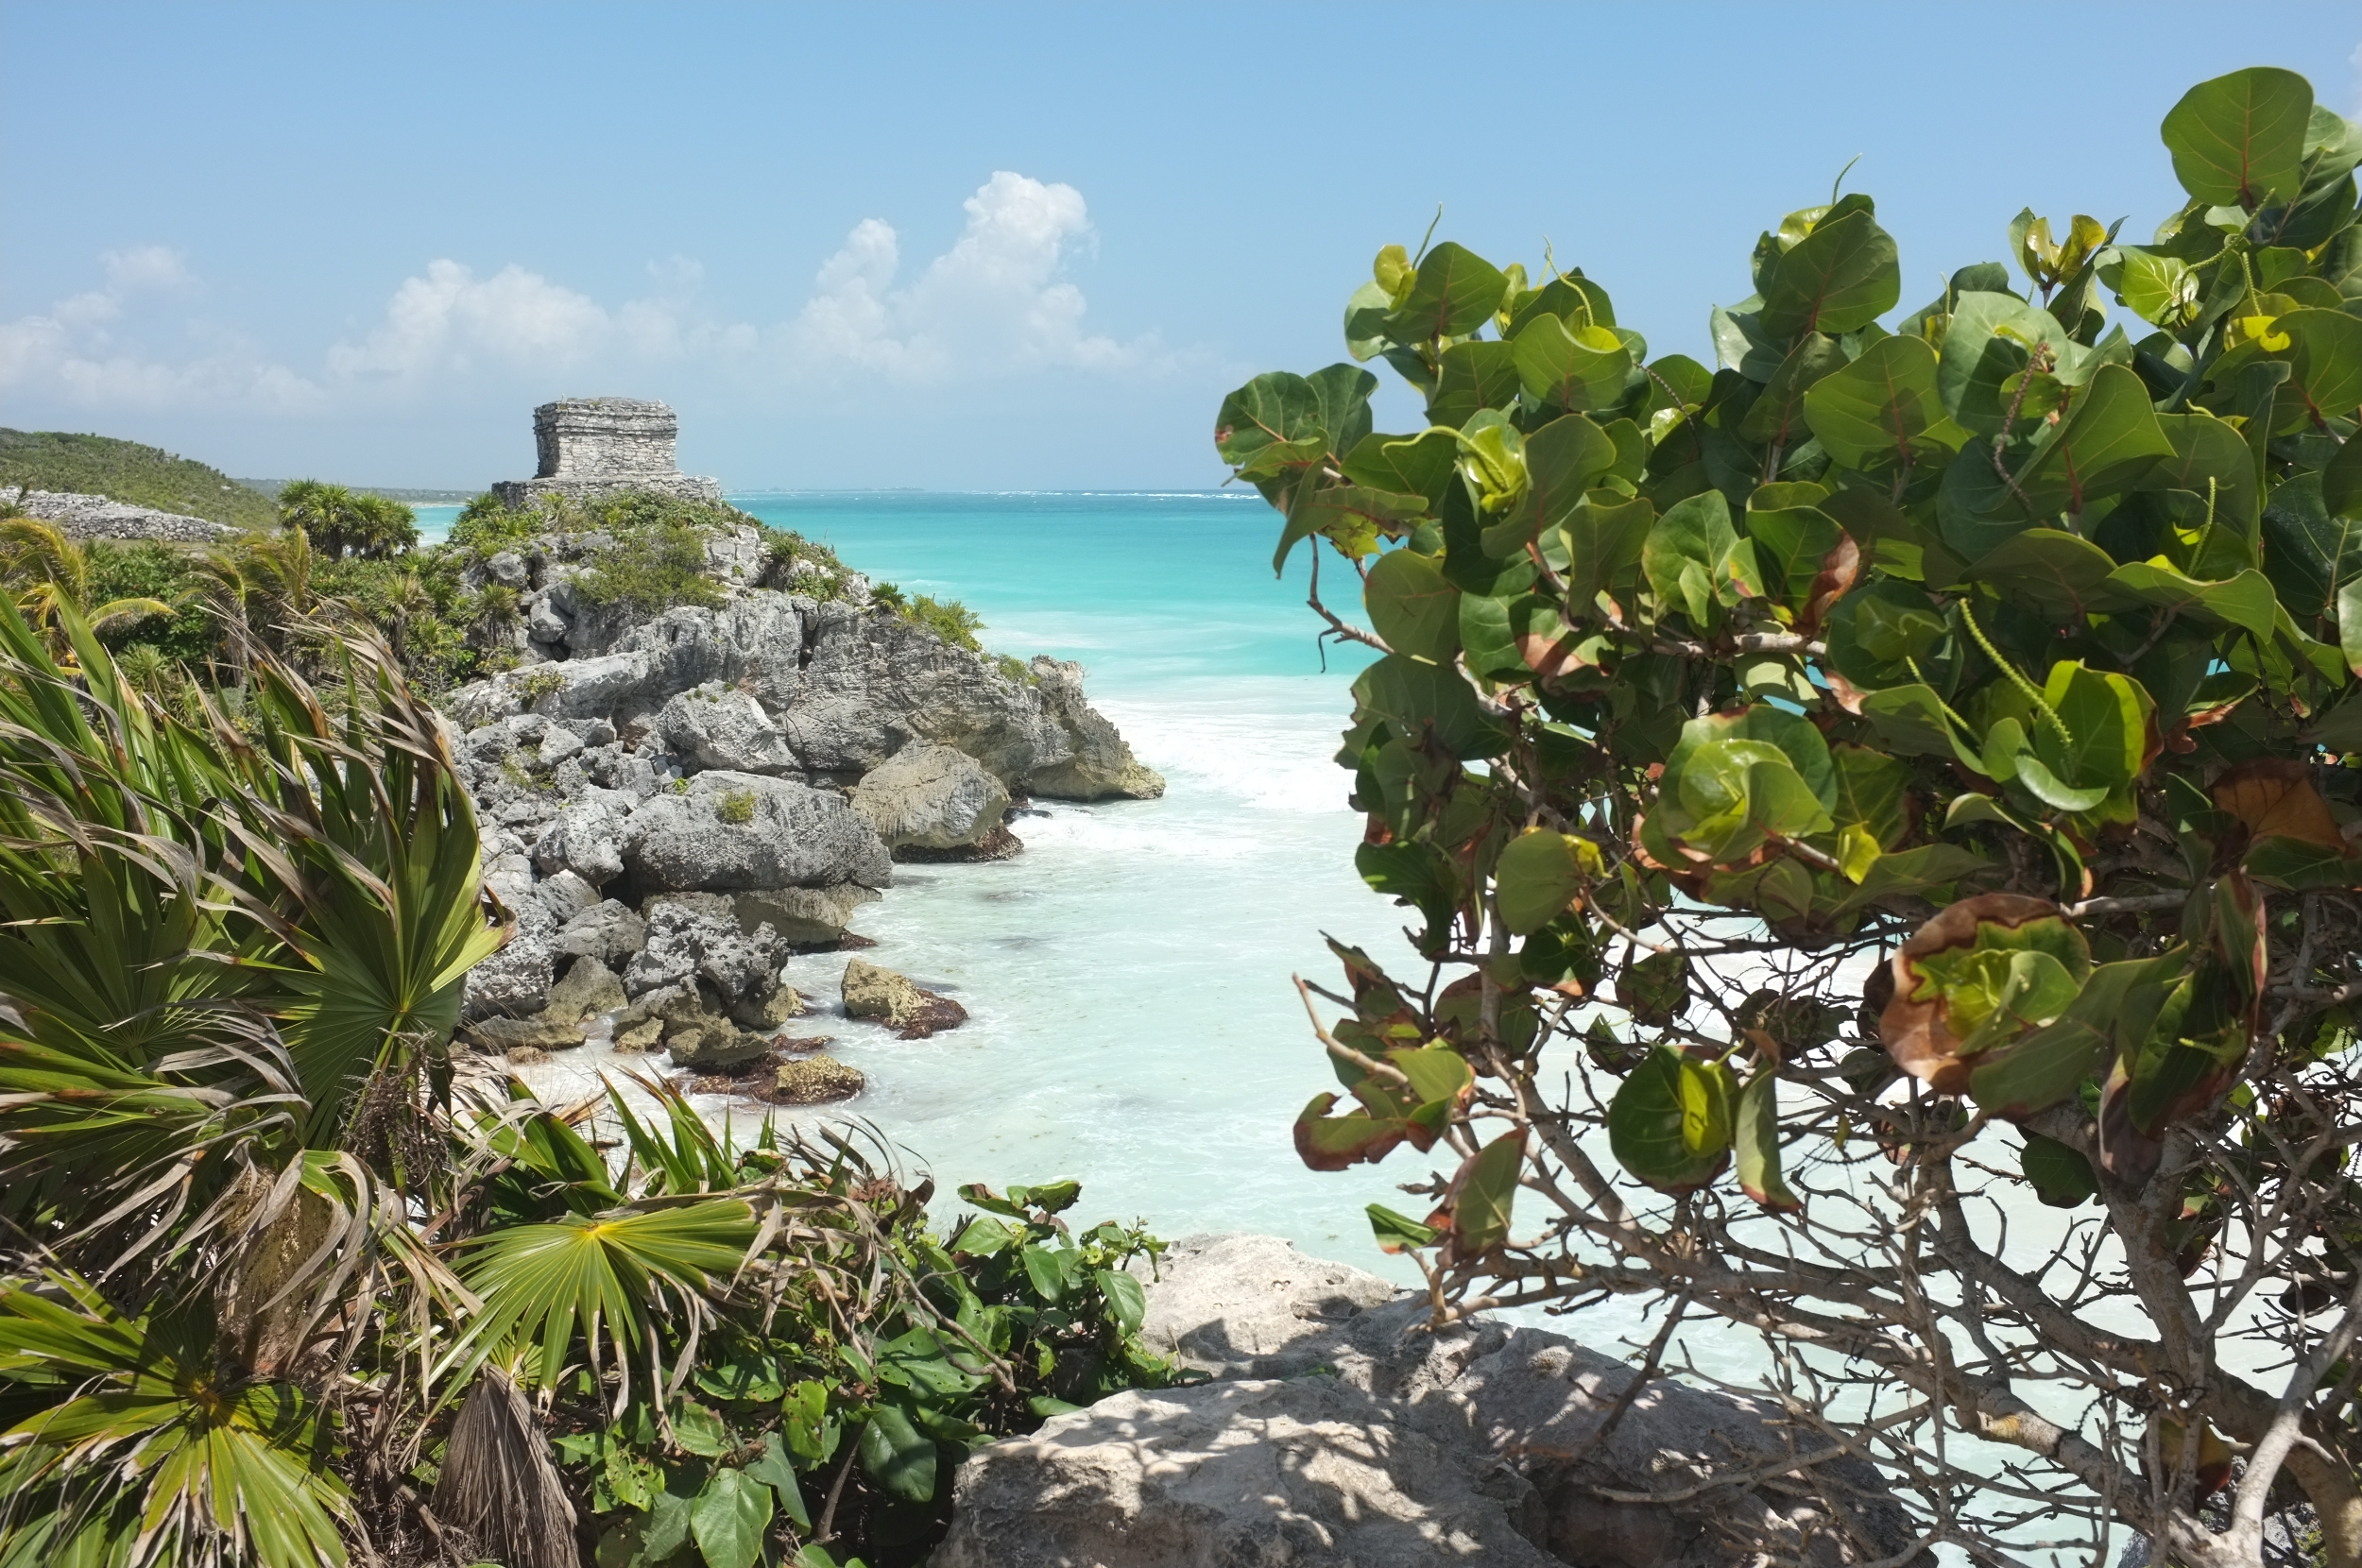 The ocean from Tulum